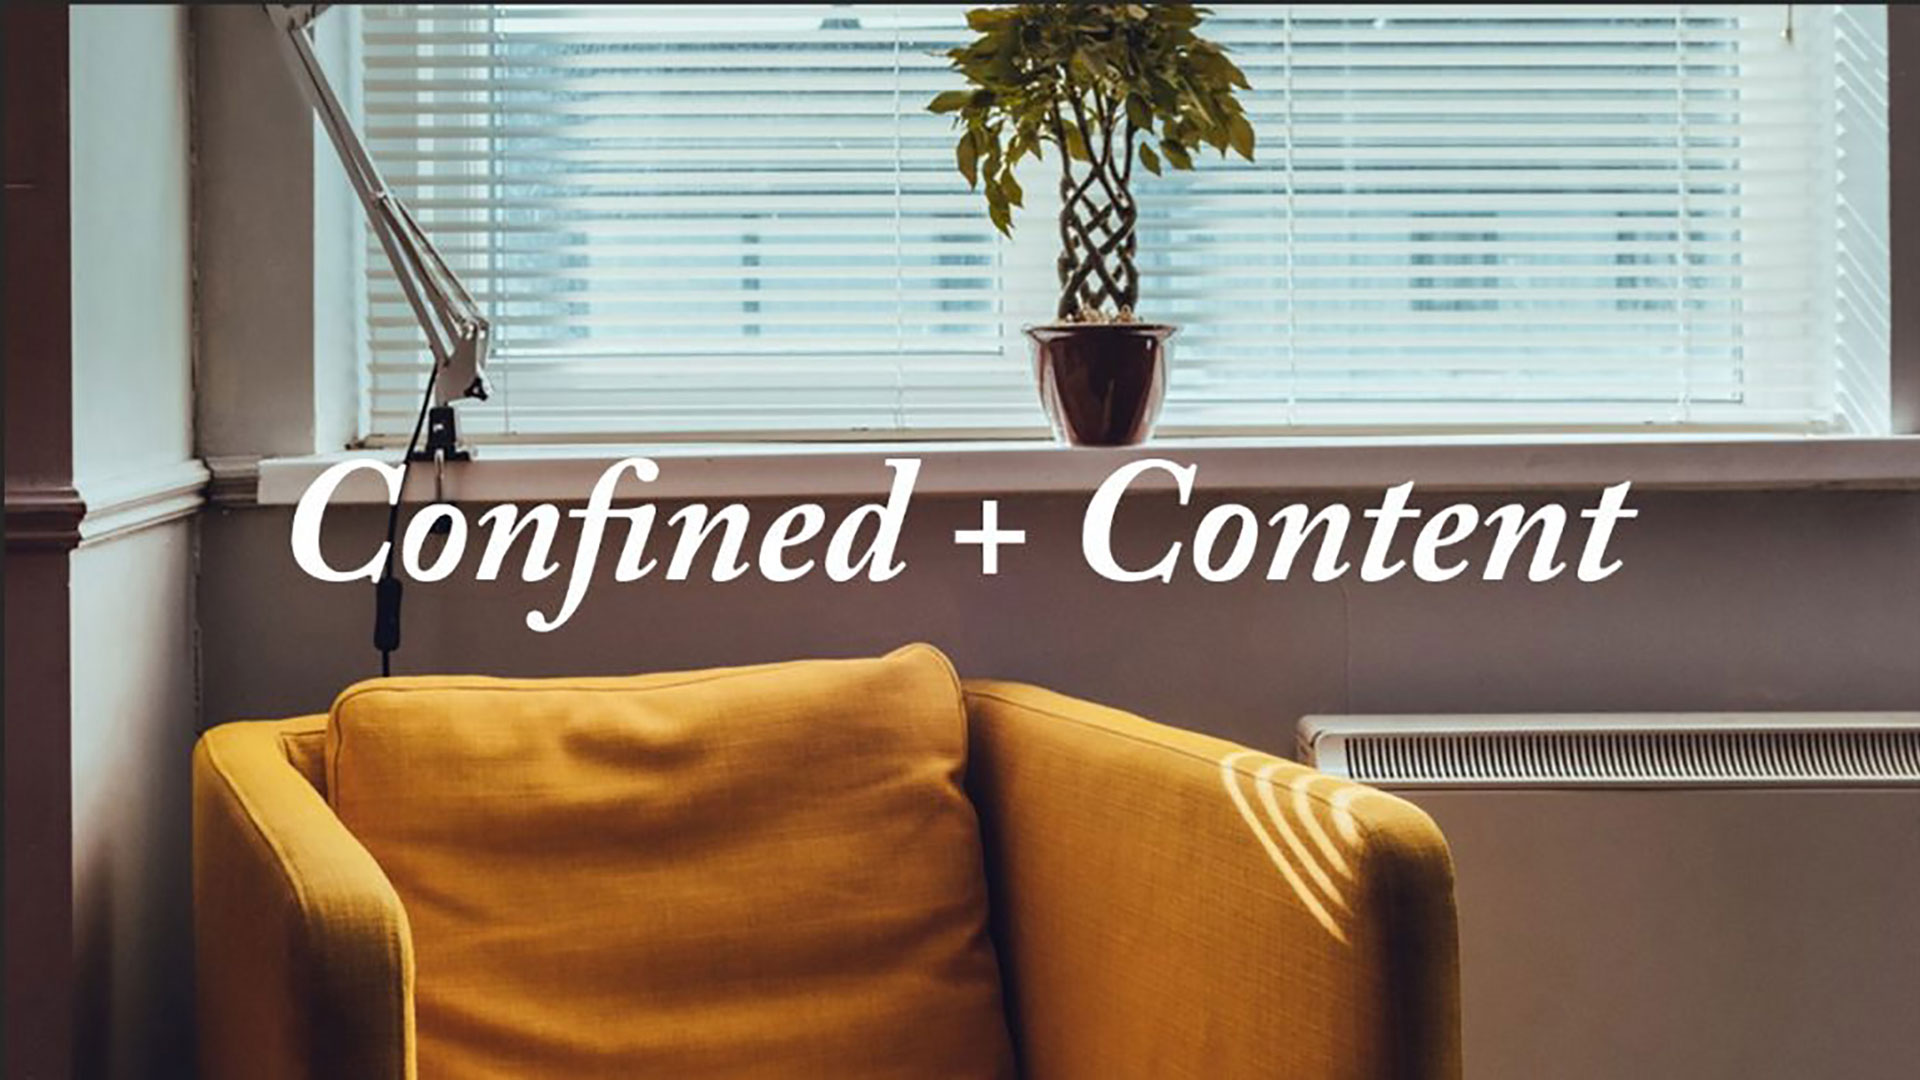 Series: Confined + Content